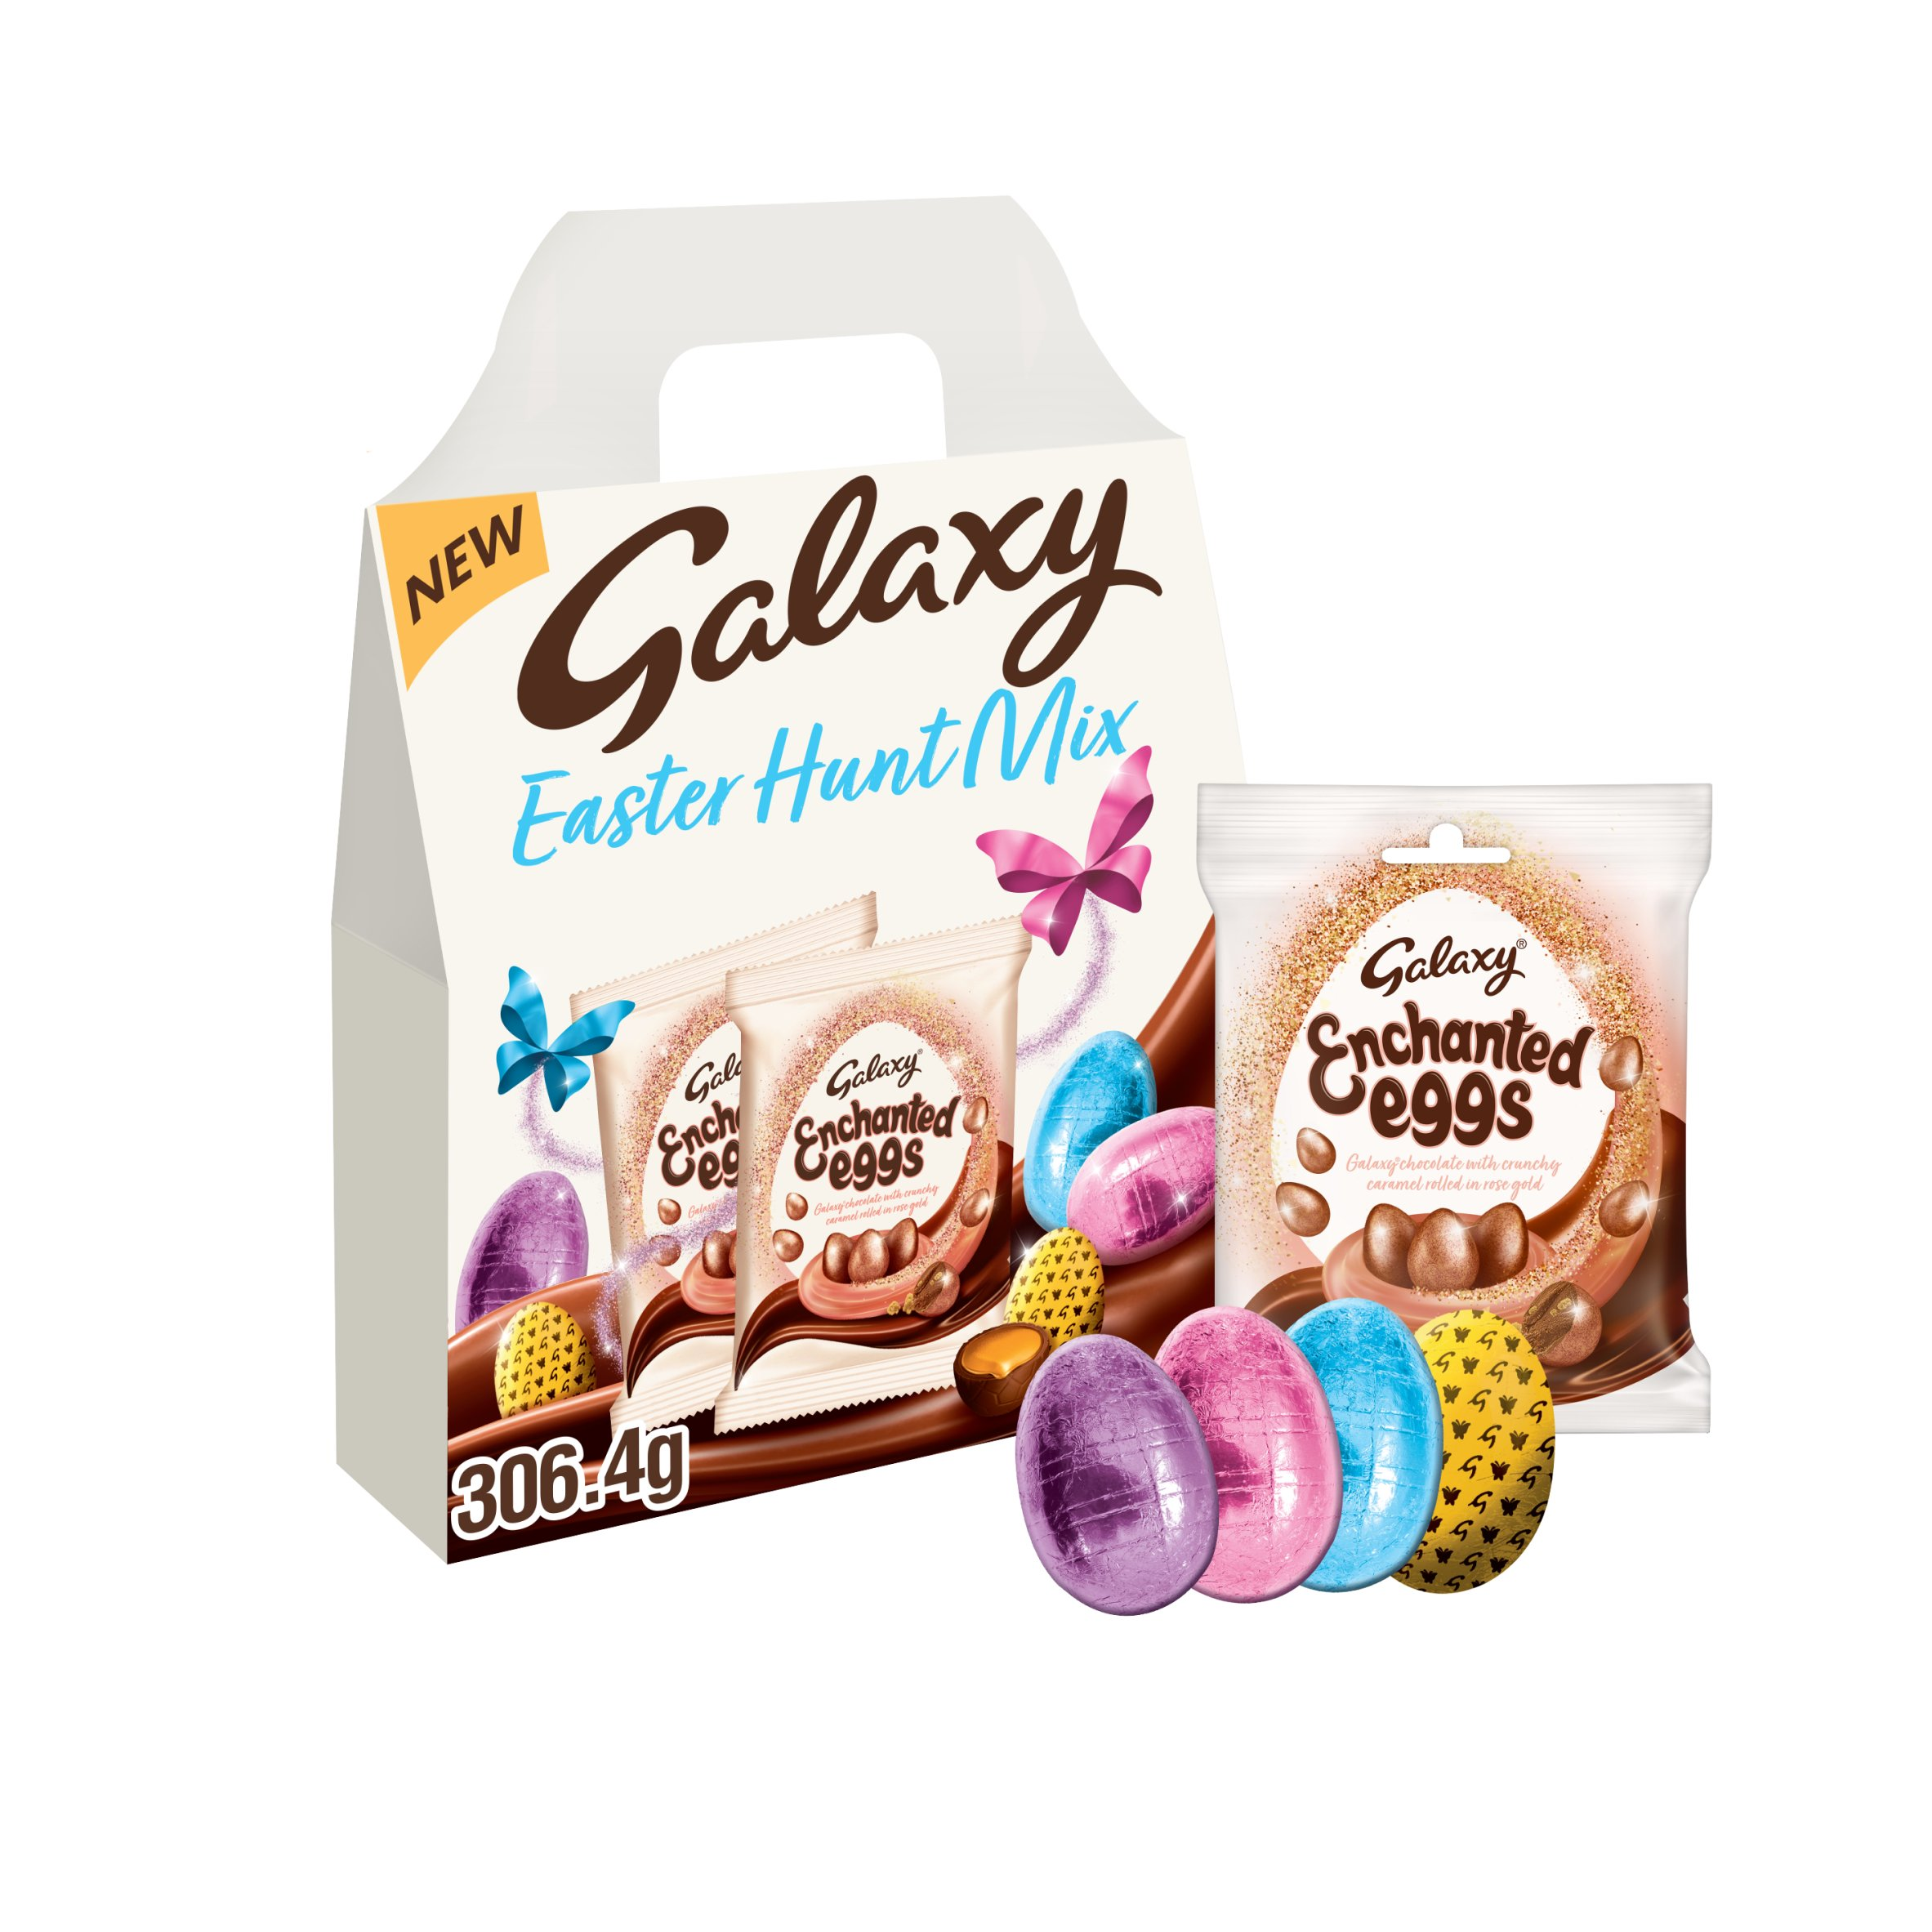 Galaxy Chocolate Easter Hunt Mix 306.4G